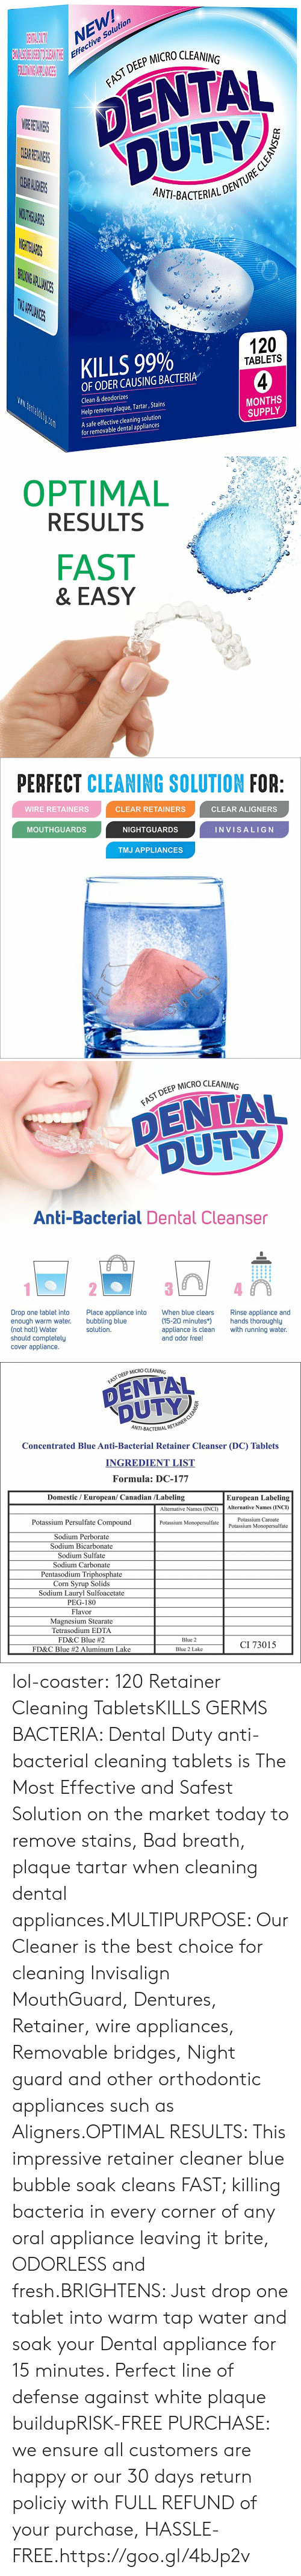 Appliance: NEW  e Solution  Effectiv  P MICRO CLEANING  DENTAL  DUTY  AST DEEP  CL  ANT-BACTERIALD  THG  PLIANIES  KILLS 99%  120  TABLETS  OF ODER CAUSING BACTERIA  Clean & deodorizes  Help remove plaque, Tartar, Stains  A safe effective cleaning solution  MONTHS  SUPPLY  for removable dental appliances   OPTIMAL  RESULTS  FAST  & EASY   PERFECT CLEANING SOLUTION FOR  WIRE RETAINERS  CLEAR RETAINERS  CLEAR ALIGNERS  MOUTHGUARDS  NIGHTGUARDS  INVISALIG N  TMJ APPLIANCES   DEEP MICRO CLEANING  DENTAL  DUTY  Anti-Bacterial Dental Cleanser  Drop one tablet into  enough warm water.  (not hot!) Water  should completely  cover appliance.  Place appliance into  bubbling blue  solution  When blue clears  Rinse appliance and  (15-20 minutes*hands thoroughly  appliance is clean with running water.  and odor free!   P MICRO CLEANING  FAST DEEP  NT-BACTERIAL R  Concentrated Blue Anti-Bacterial Retainer Cleanser (DC) Tablets  INGREDIENT LIST  Formula: DC-177  Domestic / European/ Canadian /Labeling  European Labeling  Alternative Names (INCI)Alternative Names (INCI)  Potassium Persulfate Compound  Sodium Perborate  Sodium Bicarbonate  Sodium Sulfate  Sodium Carbonate  Pentasodium Triphosphate  Corn Svrup Solids  Sodium Lauryl Sulfoacetate  PEG-180  Flavor  Magnesium Stearate  Tetrasodium EDTA  FD&C Blue #2  FD&C Blue #2 Aluminum Lake  Potassium Caroate  Potassium Monopersulfate  Potassium Monopersulfate  Blue 2  CI 73015  Blue 2 Lake lol-coaster:    120 Retainer Cleaning TabletsKILLS GERMS  BACTERIA: Dental Duty anti-bacterial cleaning tablets is The Most Effective and Safest Solution on the market today to remove stains, Bad breath, plaque  tartar when cleaning dental appliances.MULTIPURPOSE: Our Cleaner is the best choice for cleaning Invisalign MouthGuard, Dentures, Retainer, wire appliances, Removable bridges, Night guard and other orthodontic appliances such as Aligners.OPTIMAL RESULTS: This impressive retainer cleaner blue bubble soak cleans FAST; killing bacteria in every